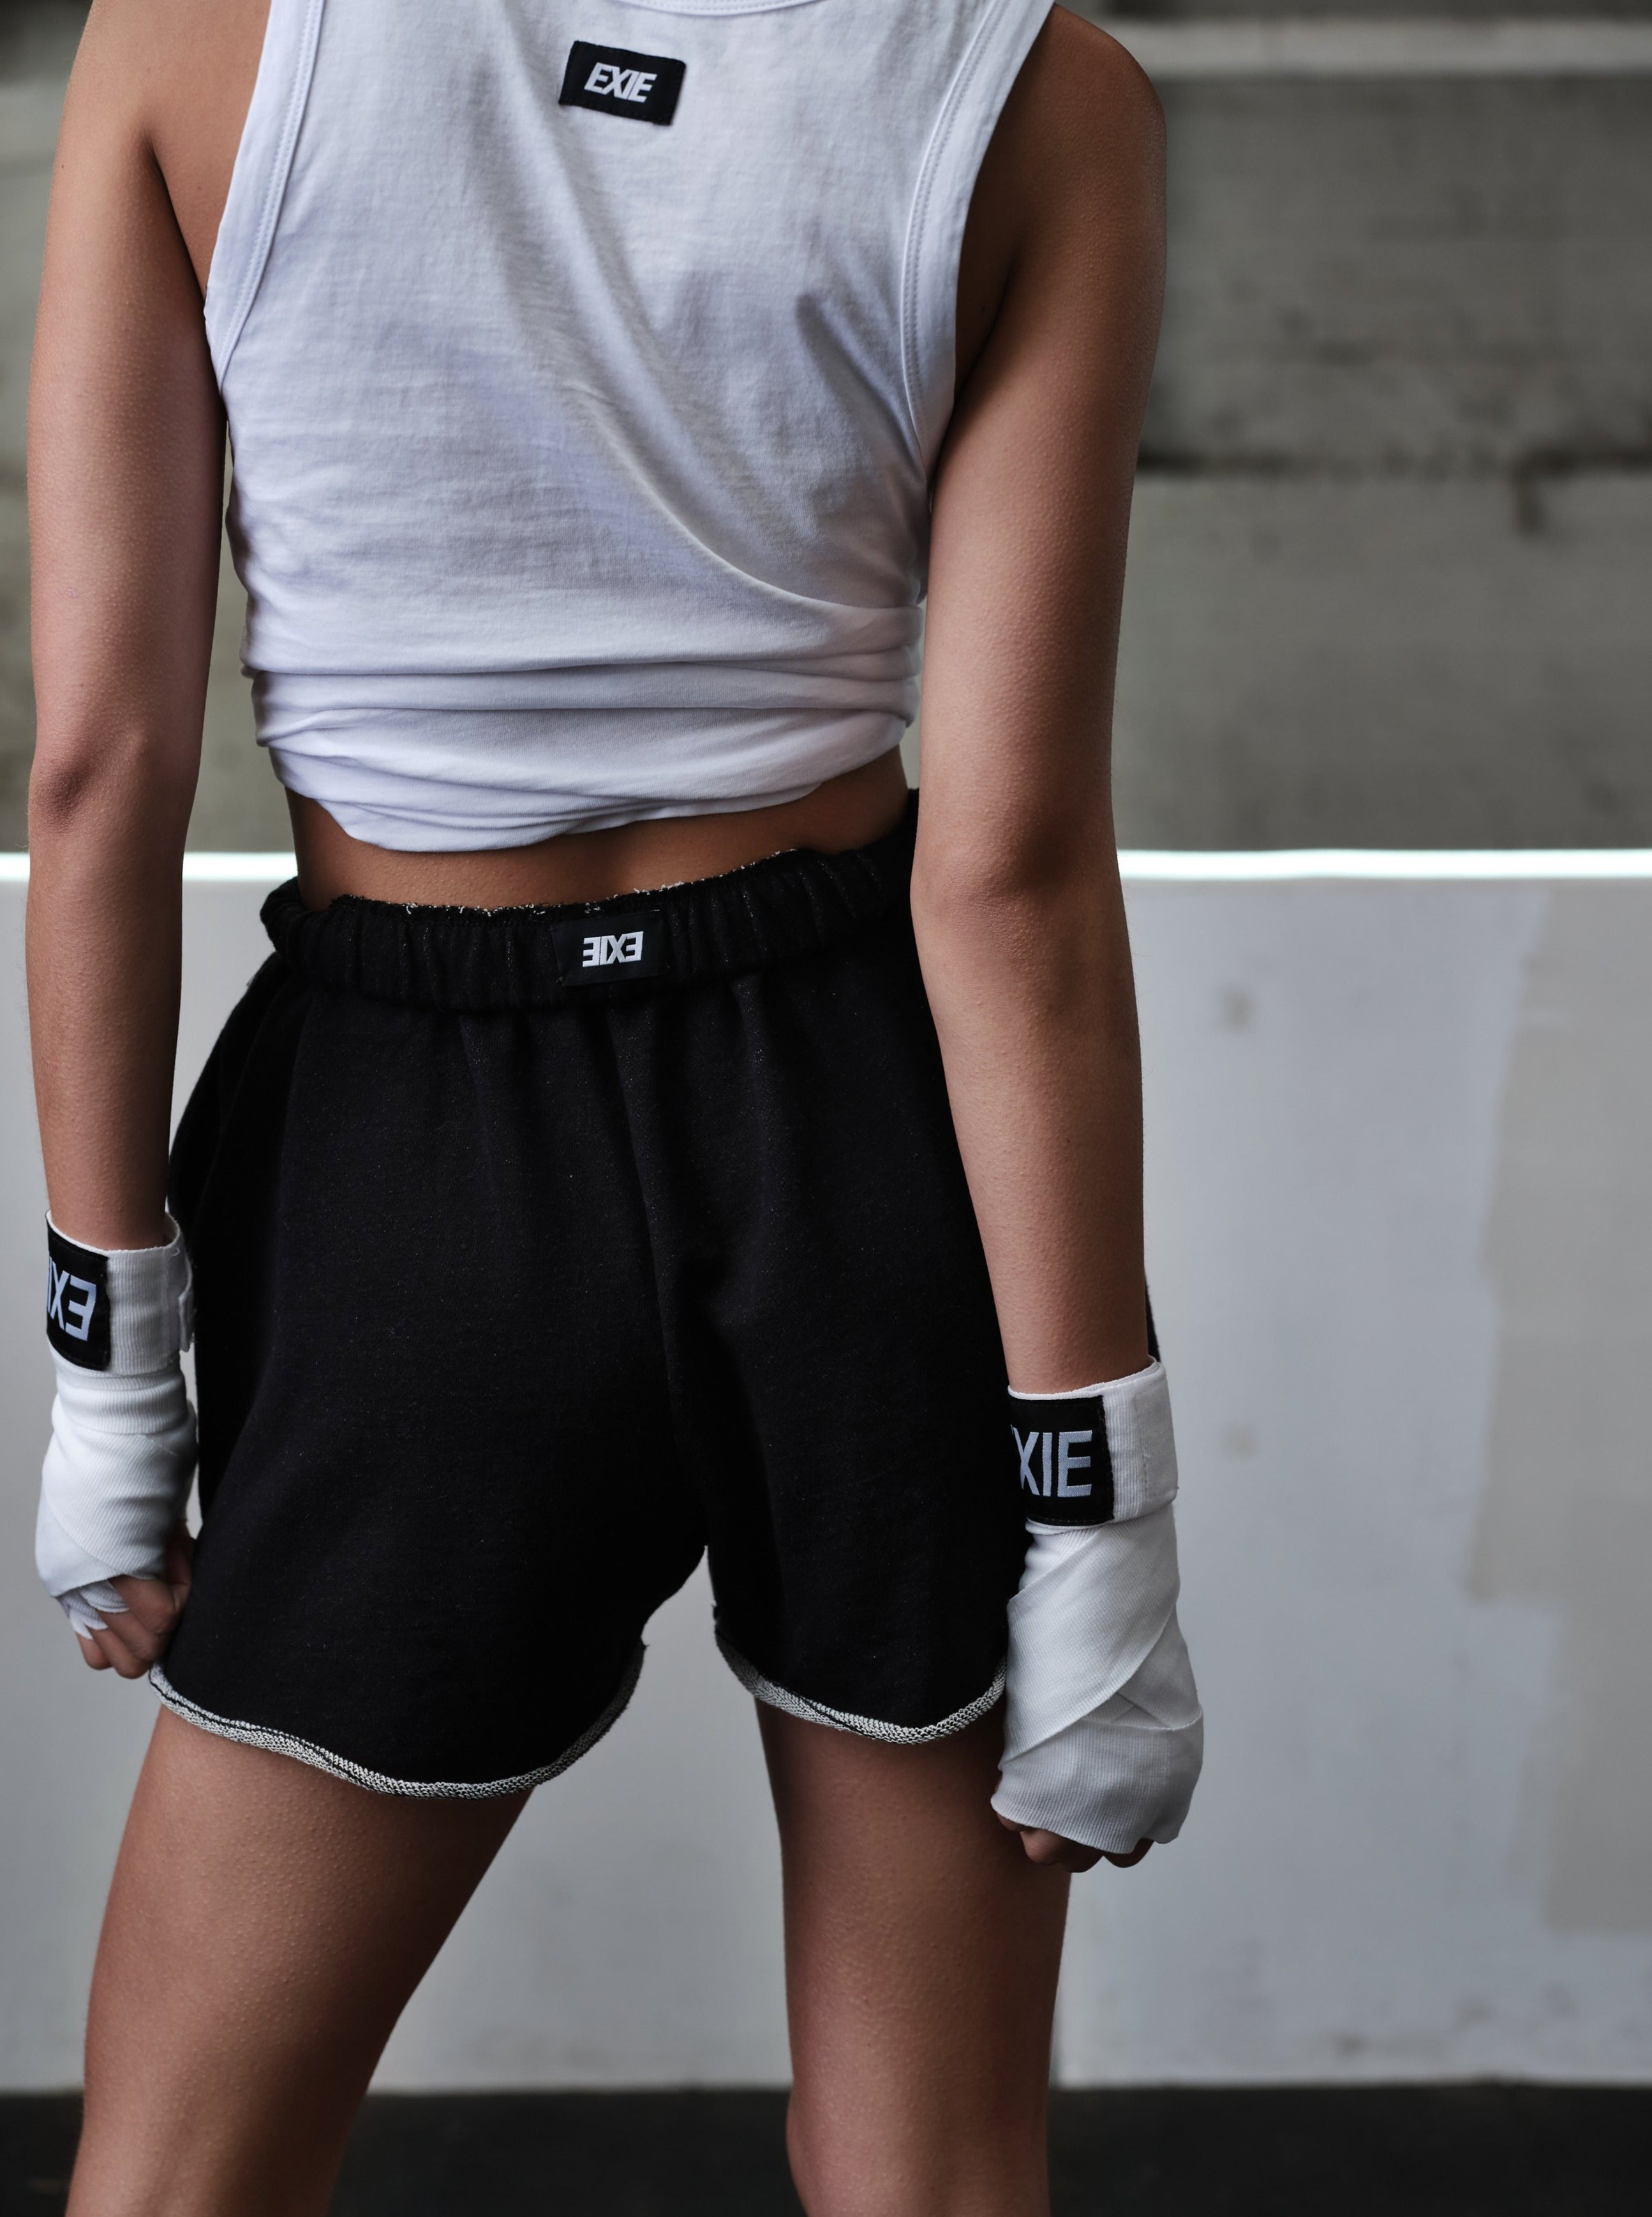 EXIE BOXING WRAPS - WHITE